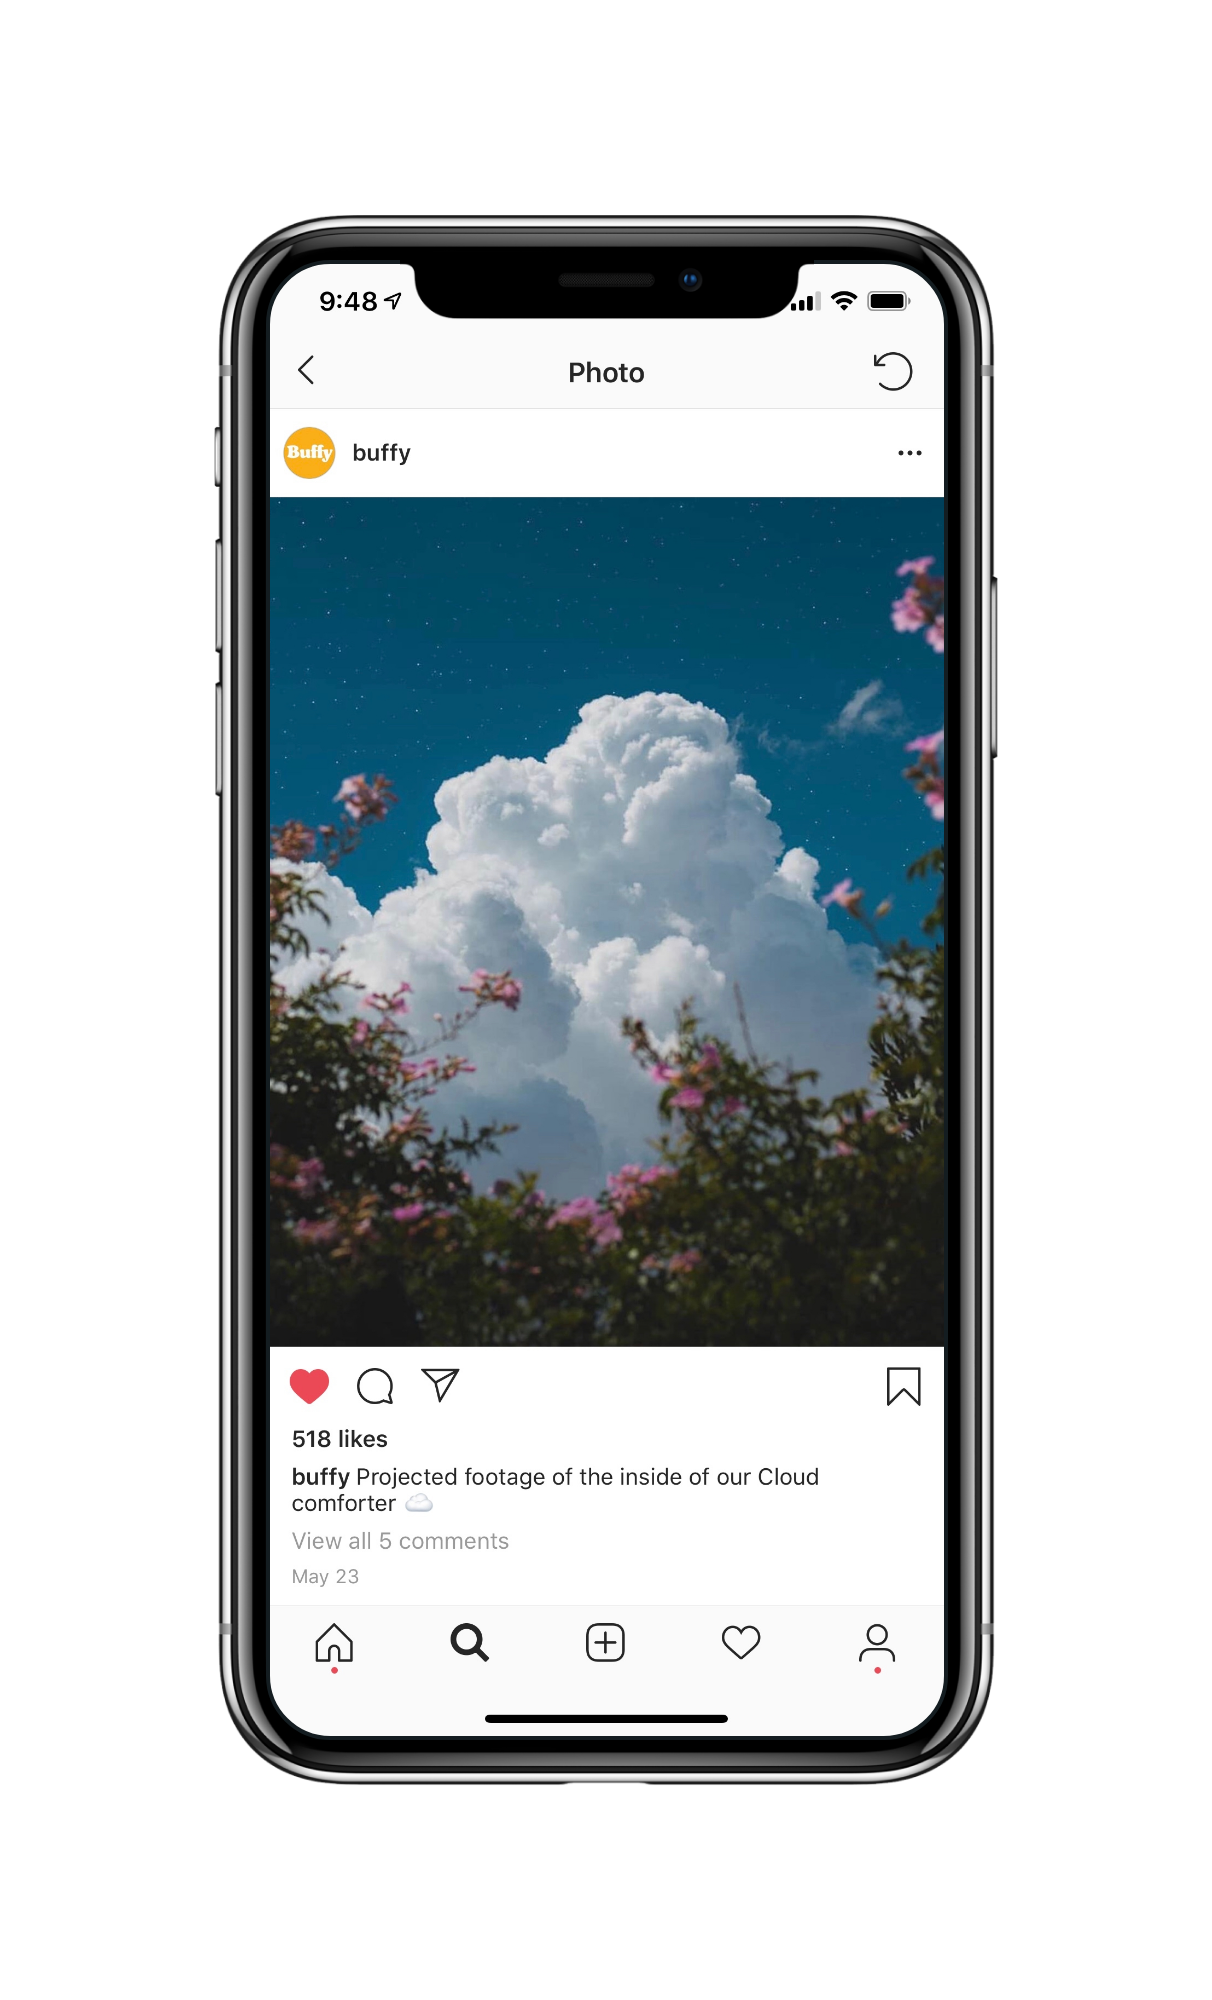 BUFFY_FINAL_FLOWERCLOUDS-iPhone X.png